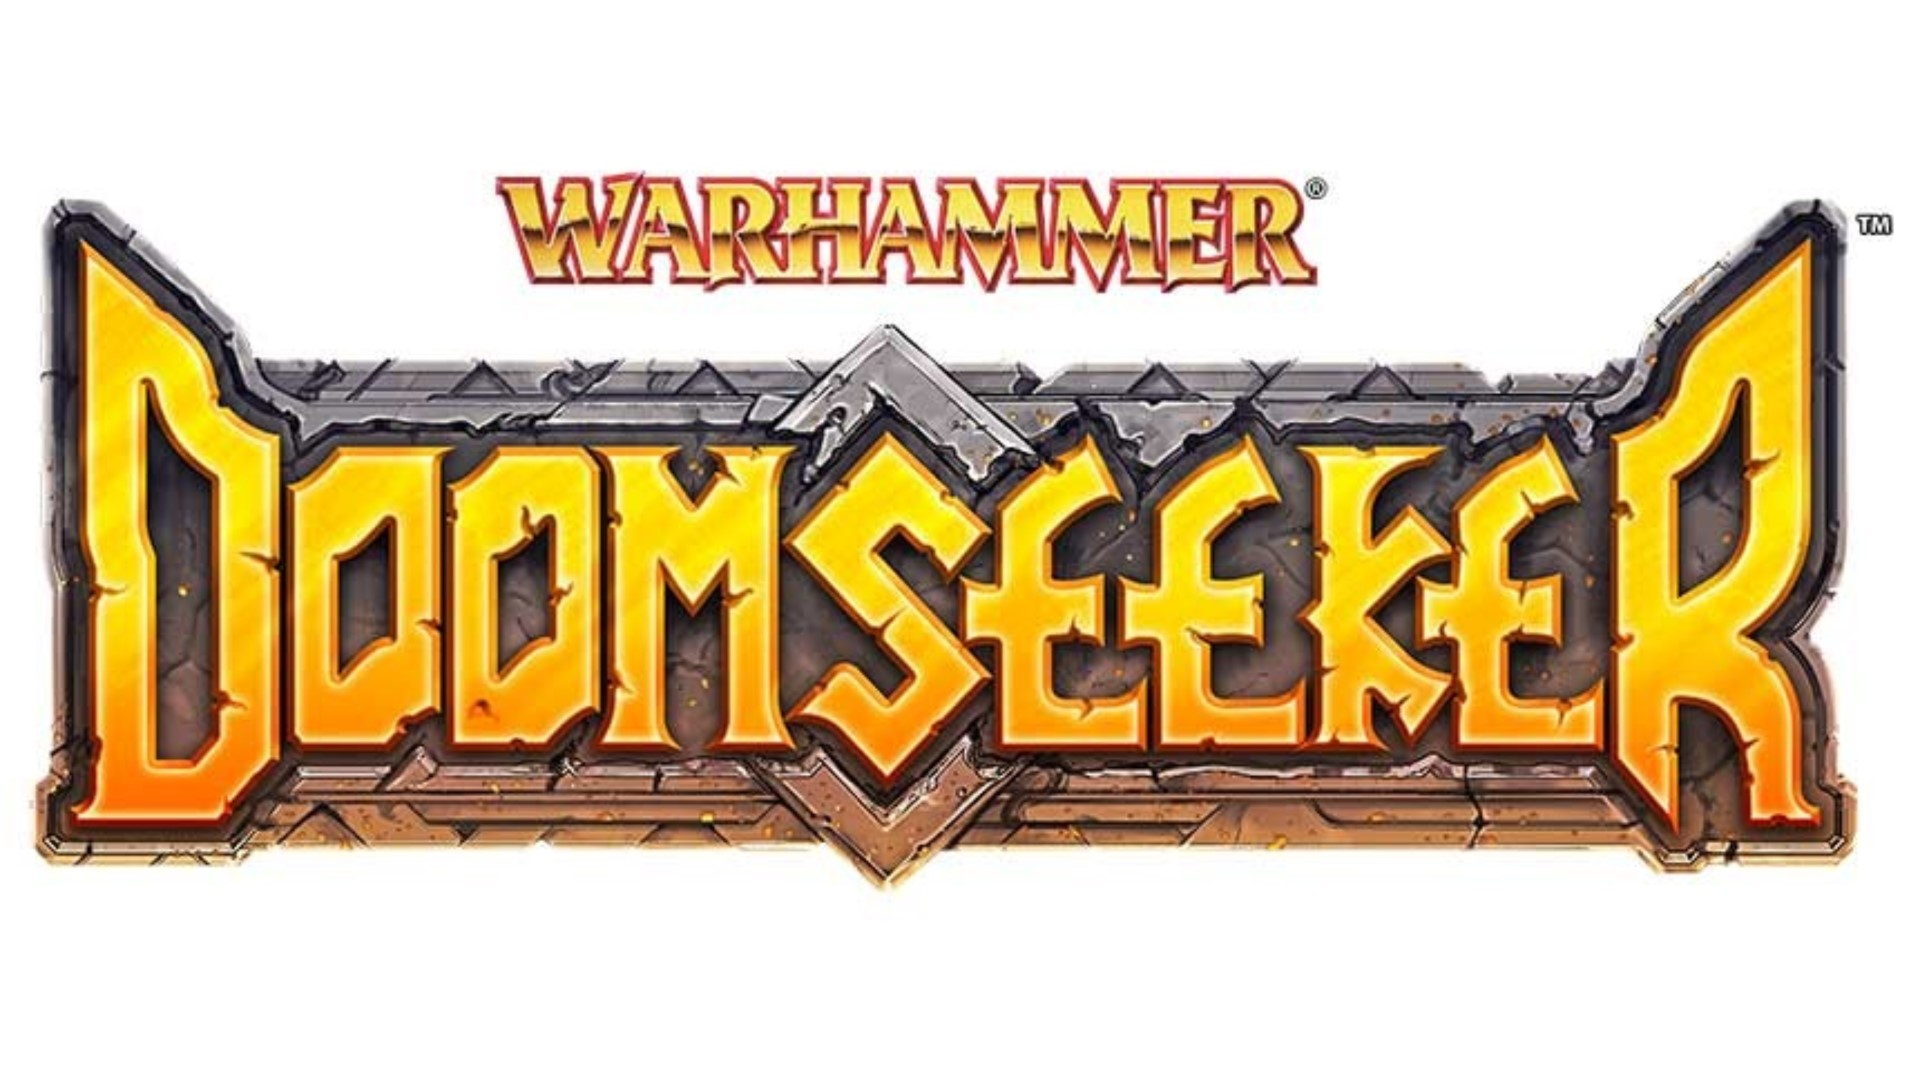 NEWS: Warhammer Doomseeker card game to be launched at